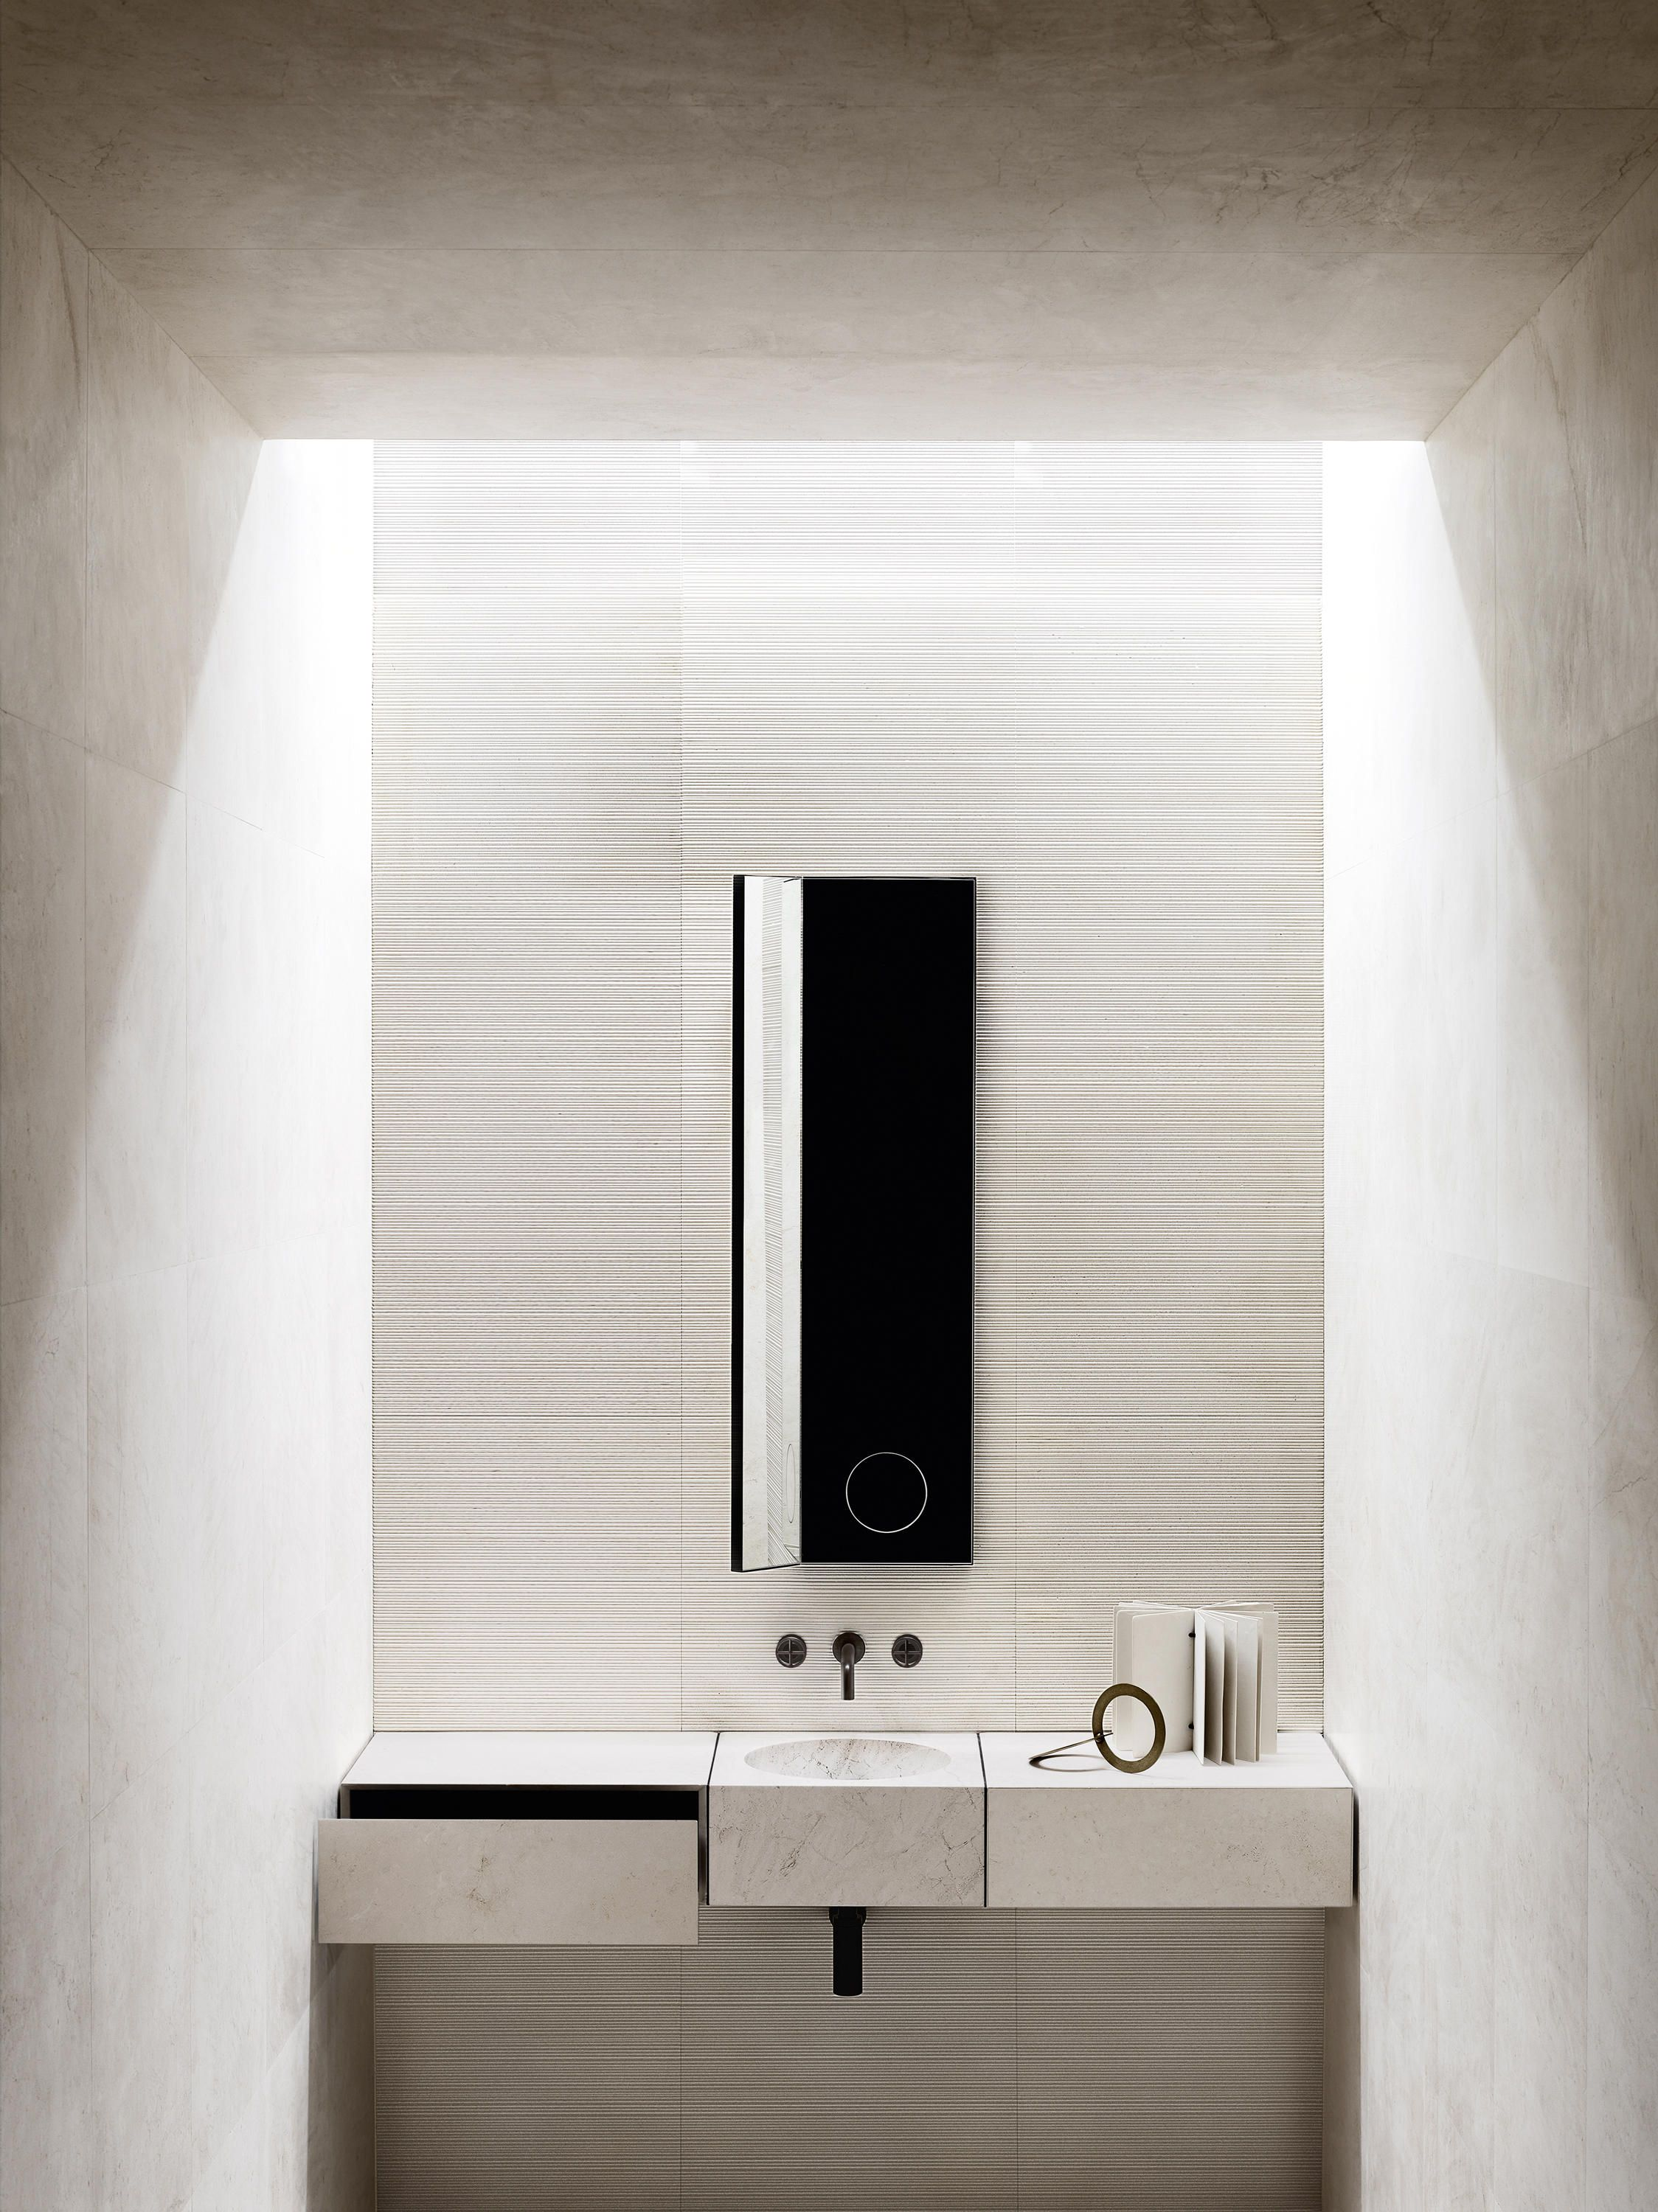 Fontane Bianche Modular Trays Shelves From Salvatori Architonic Bathroom Inspiration Restroom Design Interior